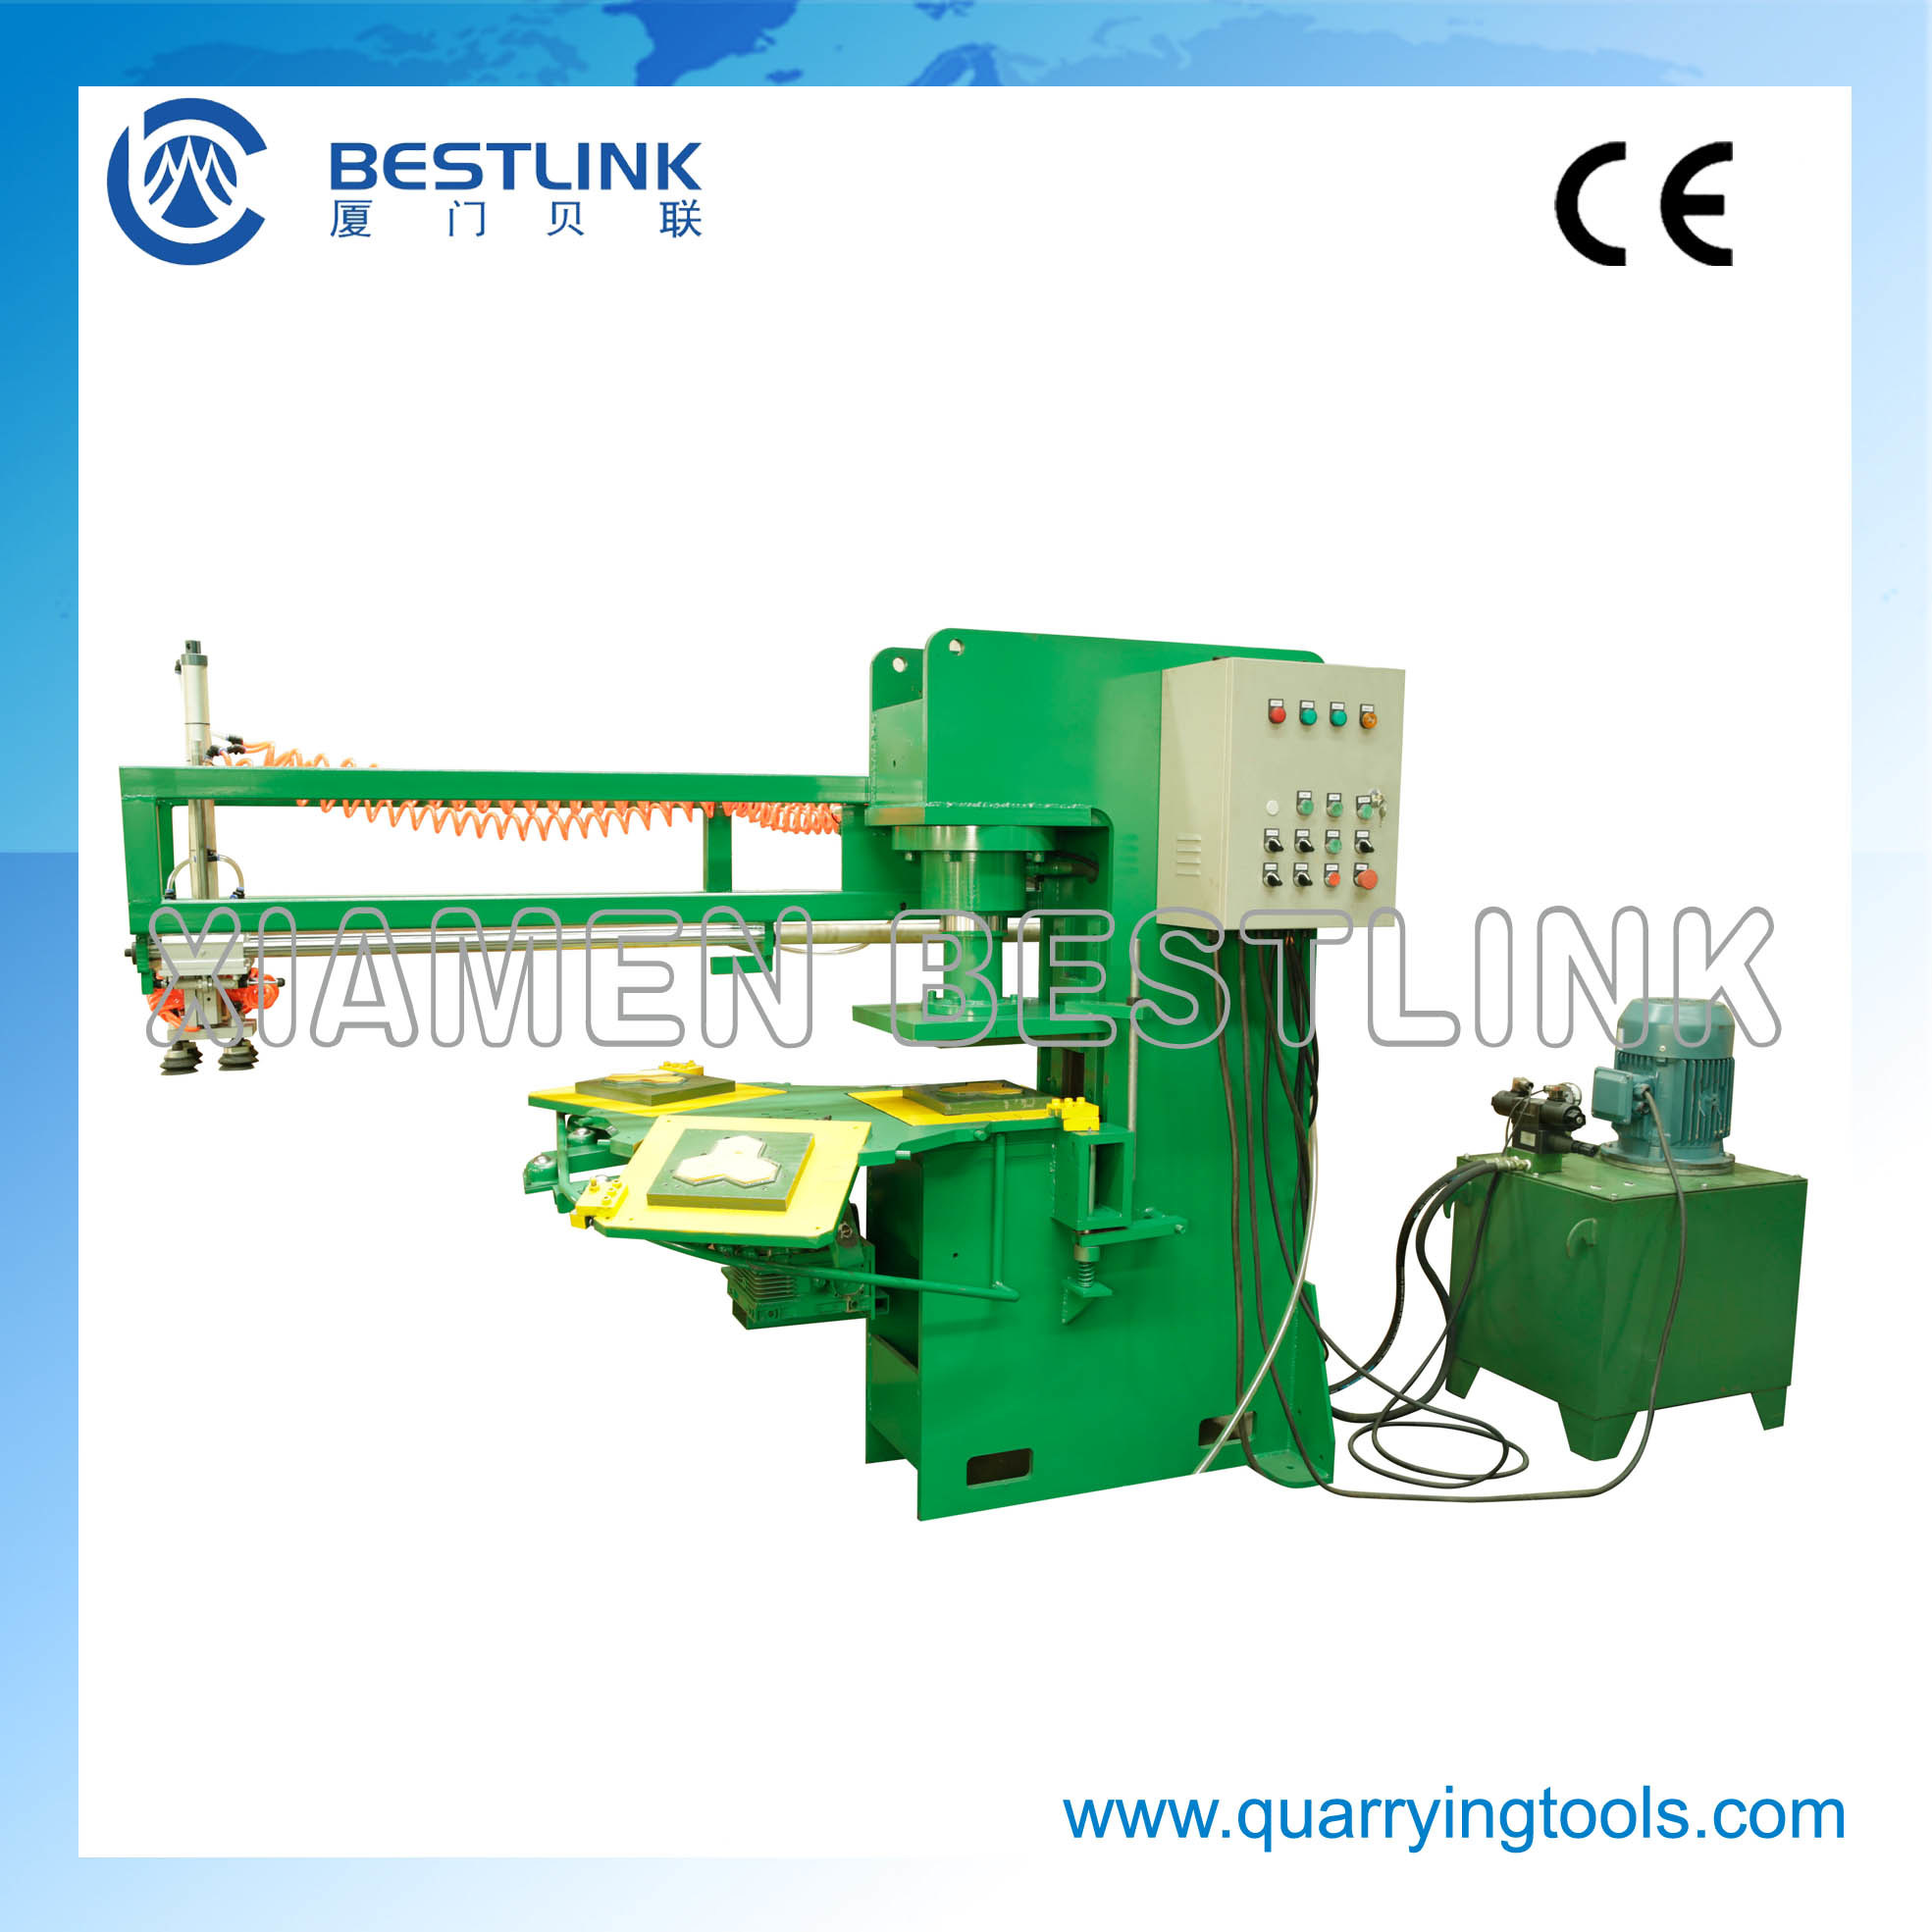 Fully Automatic Stone Stamping Machine for Recycling Waste Stone Tiles